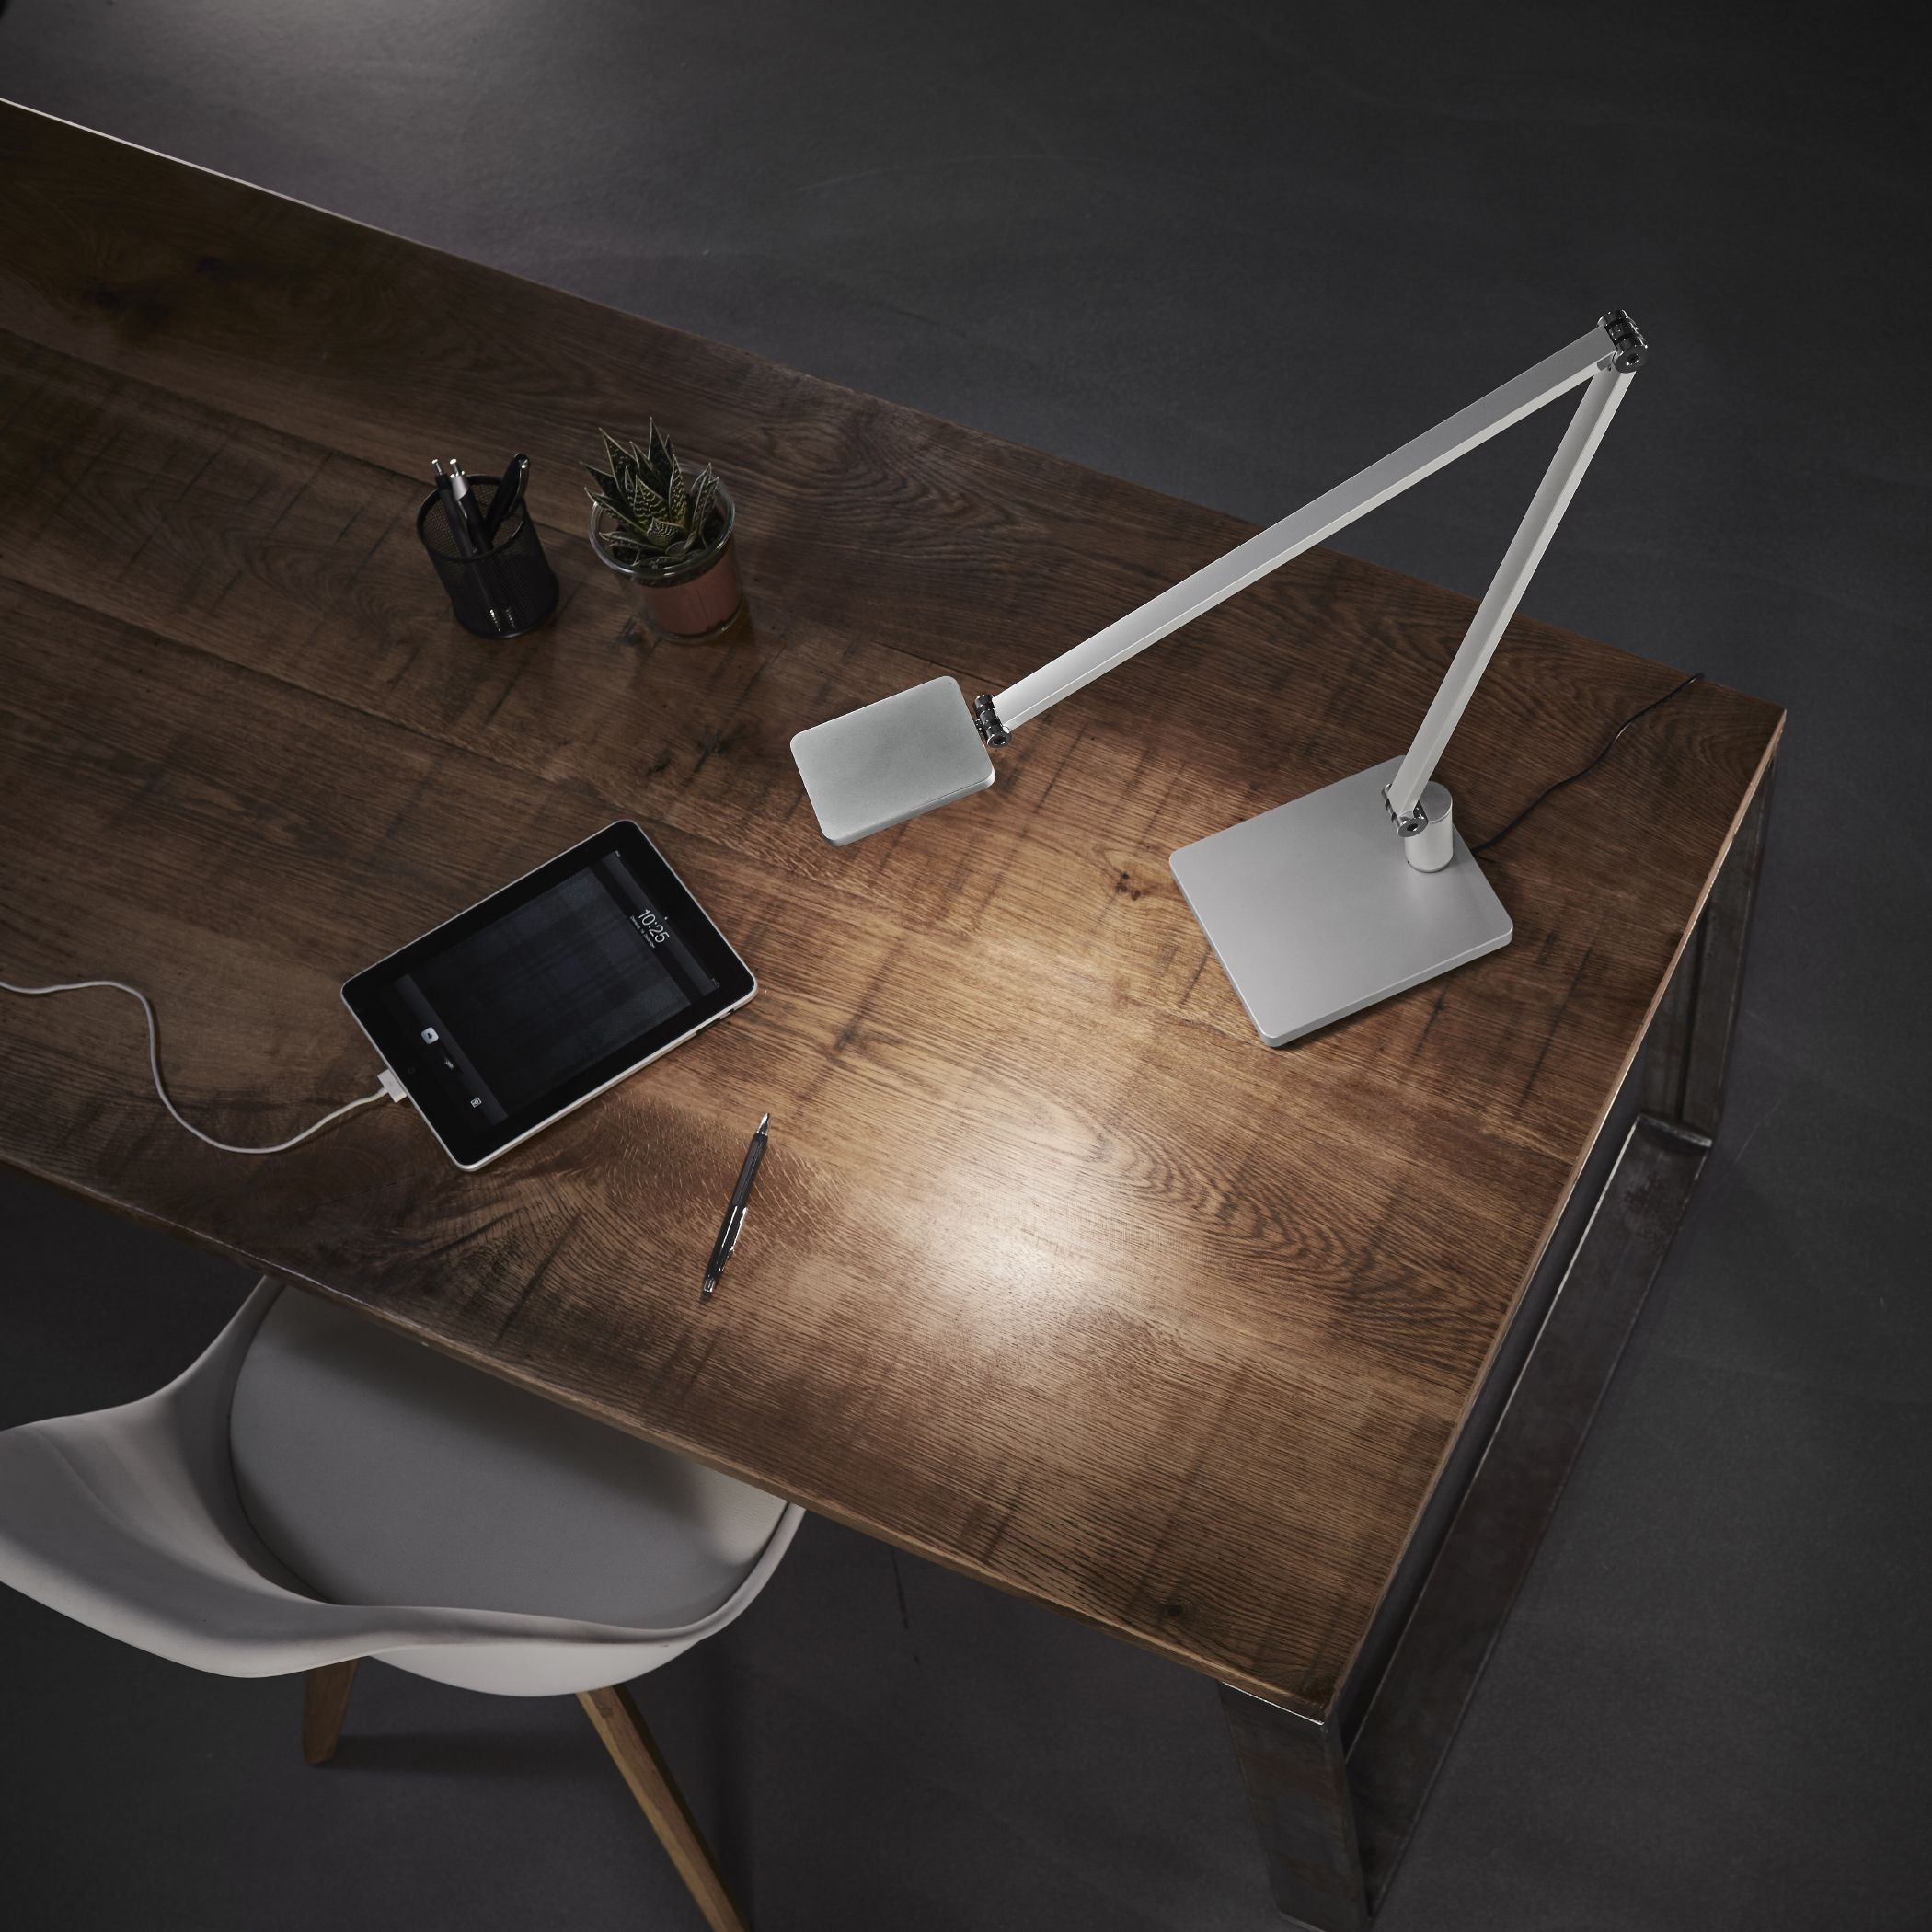 Attenzia Task Focus A Bright Clear Light Just Where You Need It To Reduce Eye Strain And Improve Focus O Workspace Design Commercial Interiors Led Lights